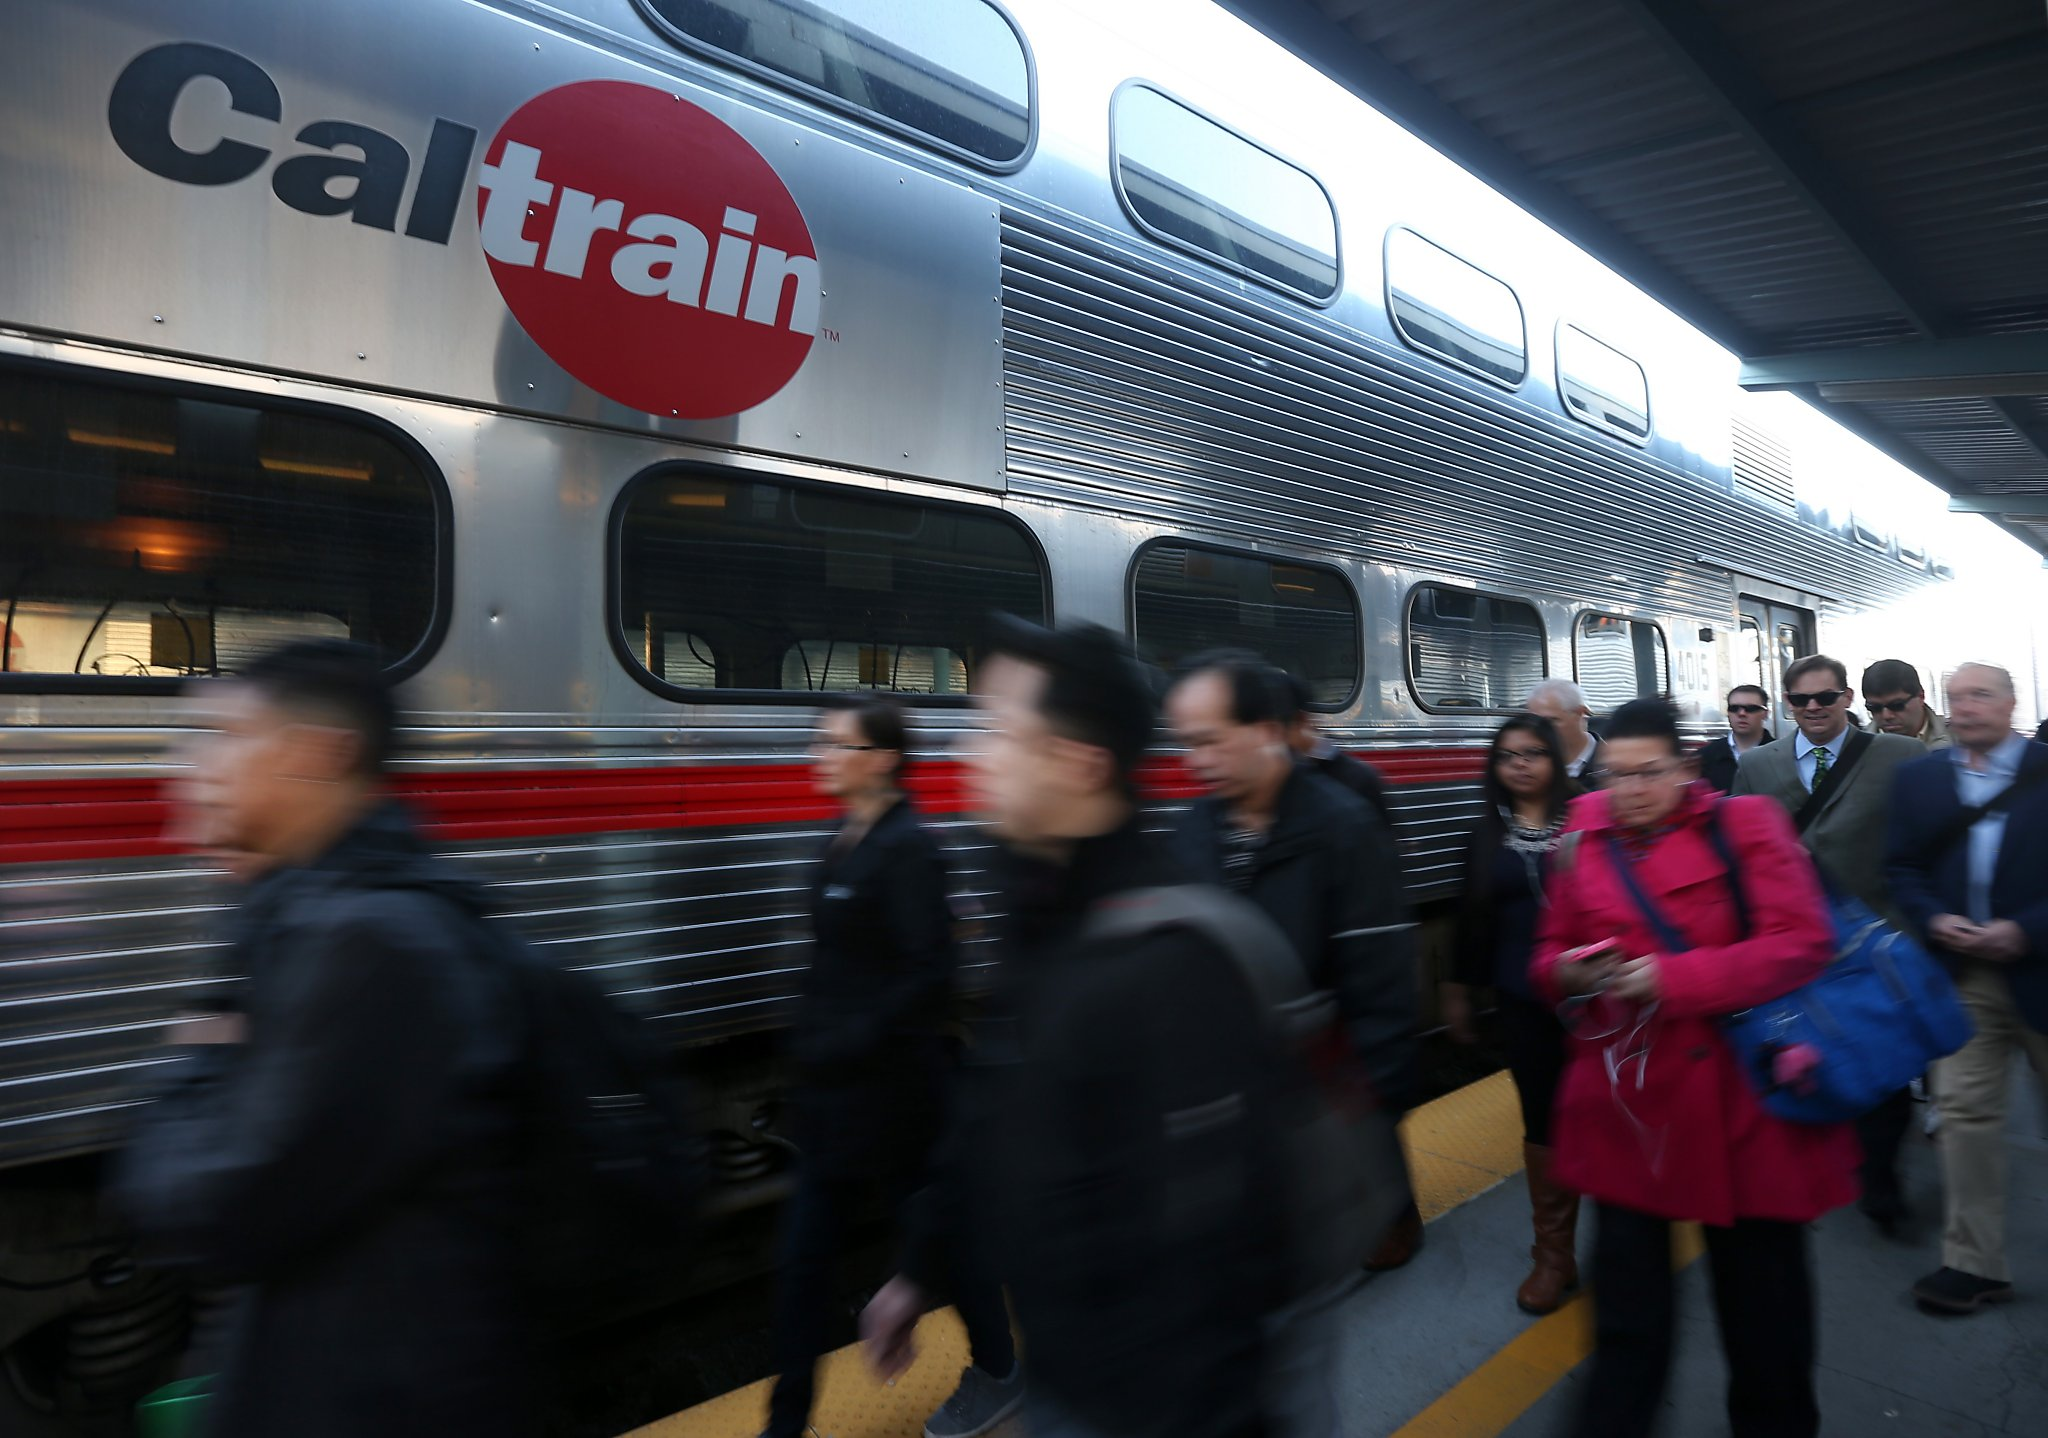 coalition to stabilize caltrain seeks support san francisco coalition to stabilize caltrain seeks support san francisco chronicle